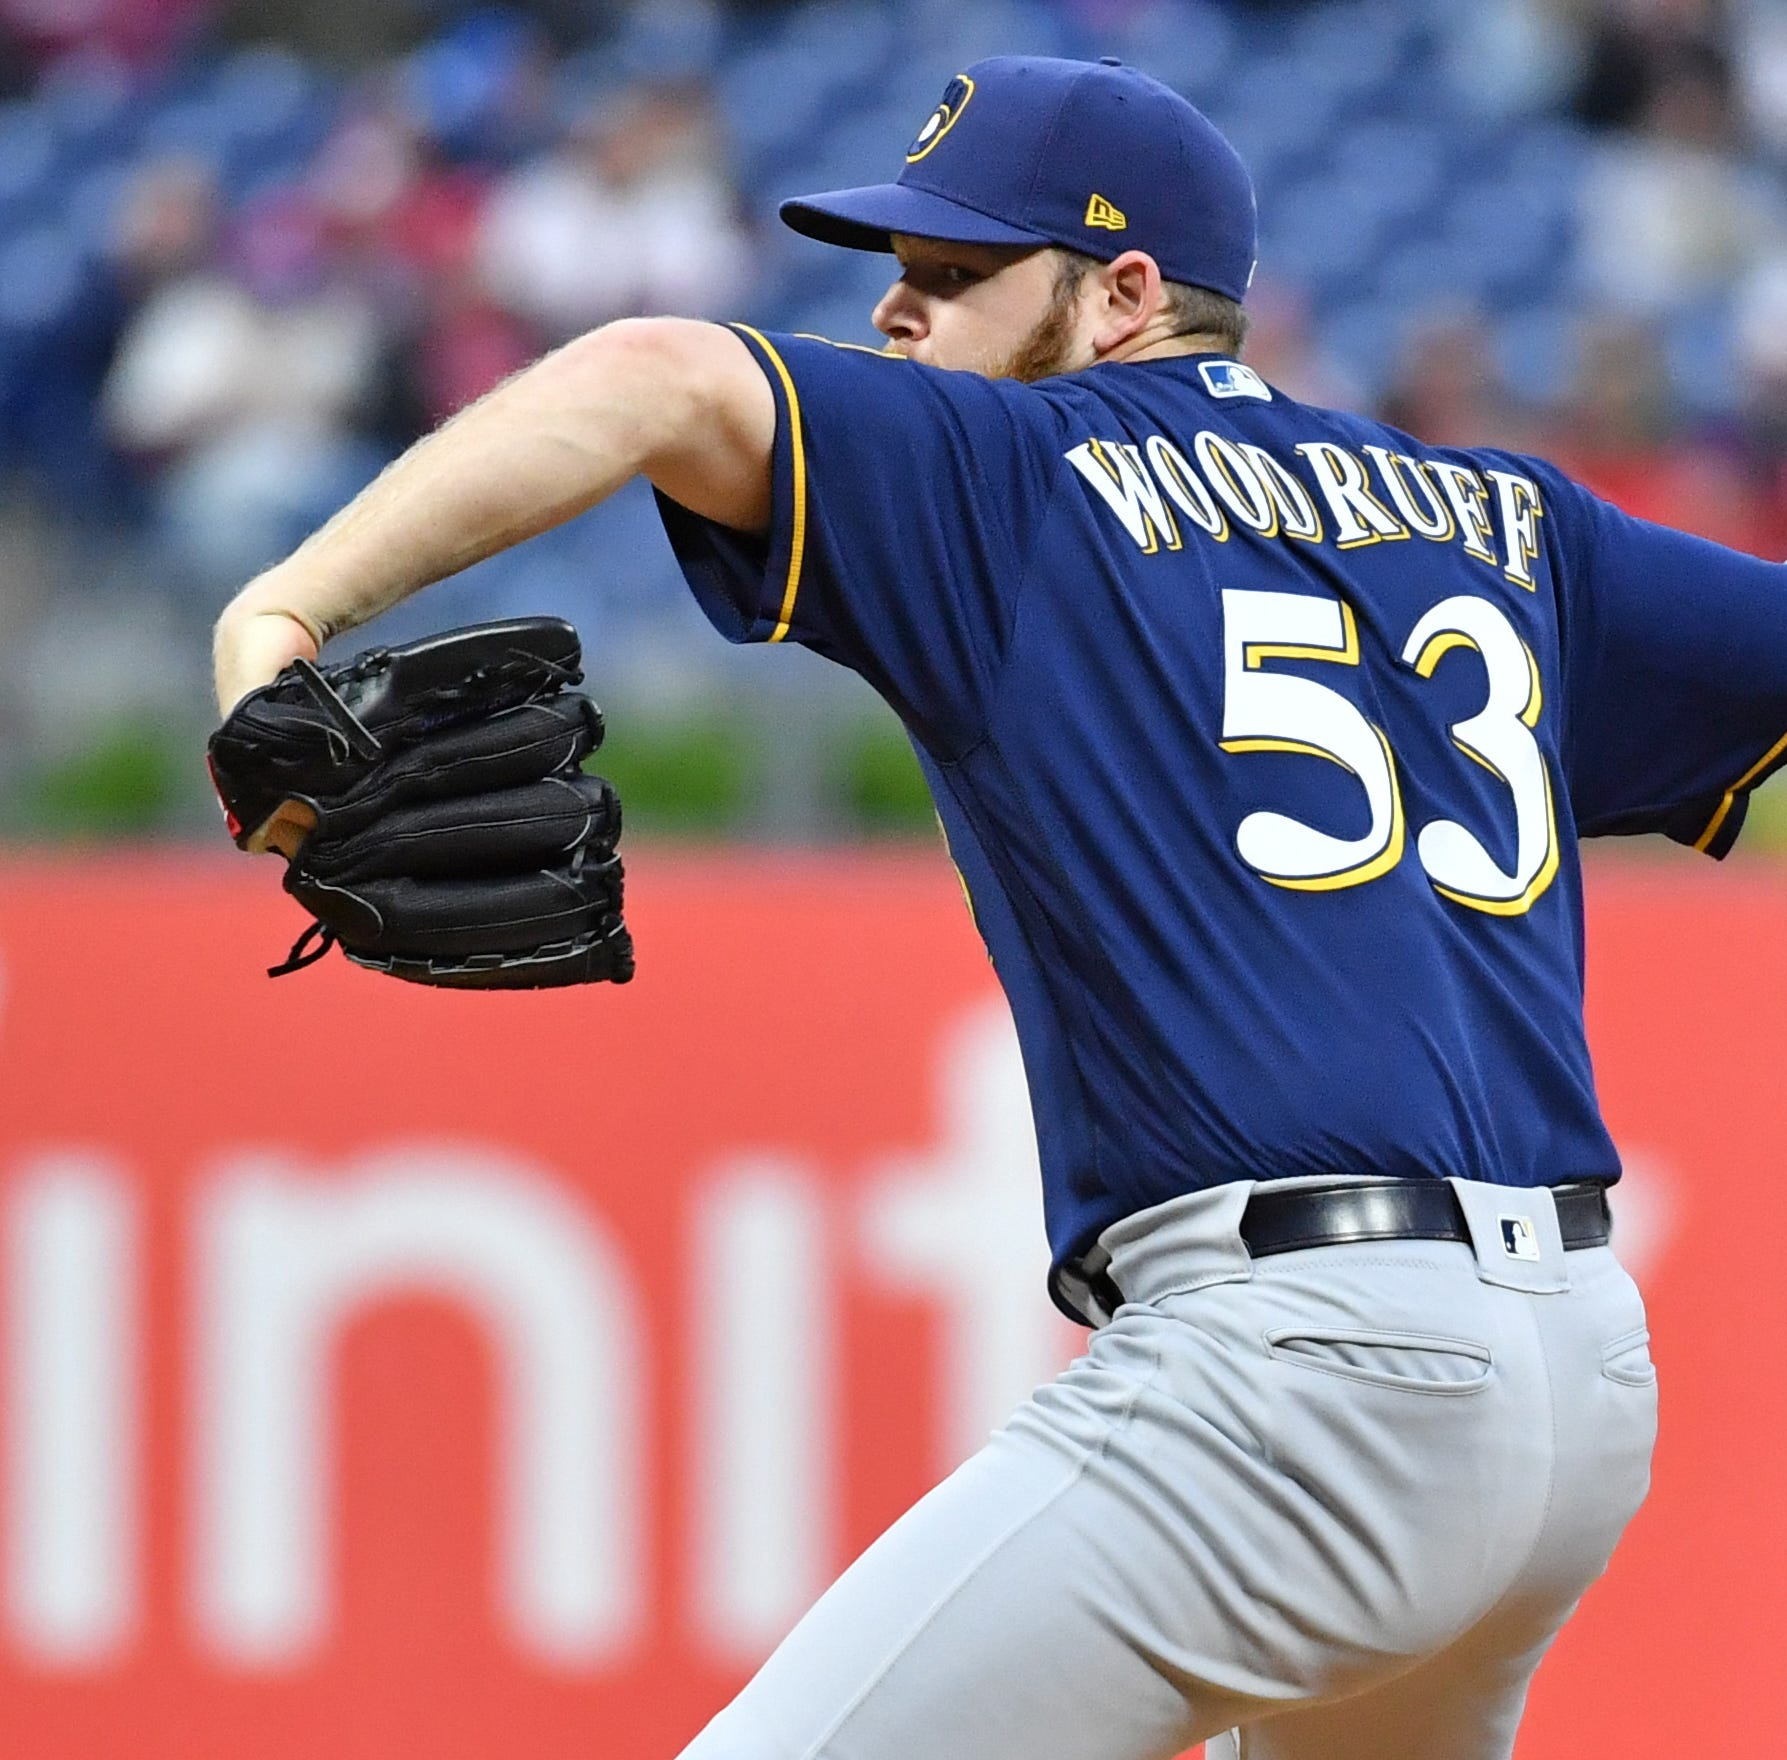 Brewers 6, Phillies 1: Brandon Woodruff continues his surge with six innings of shutout ball